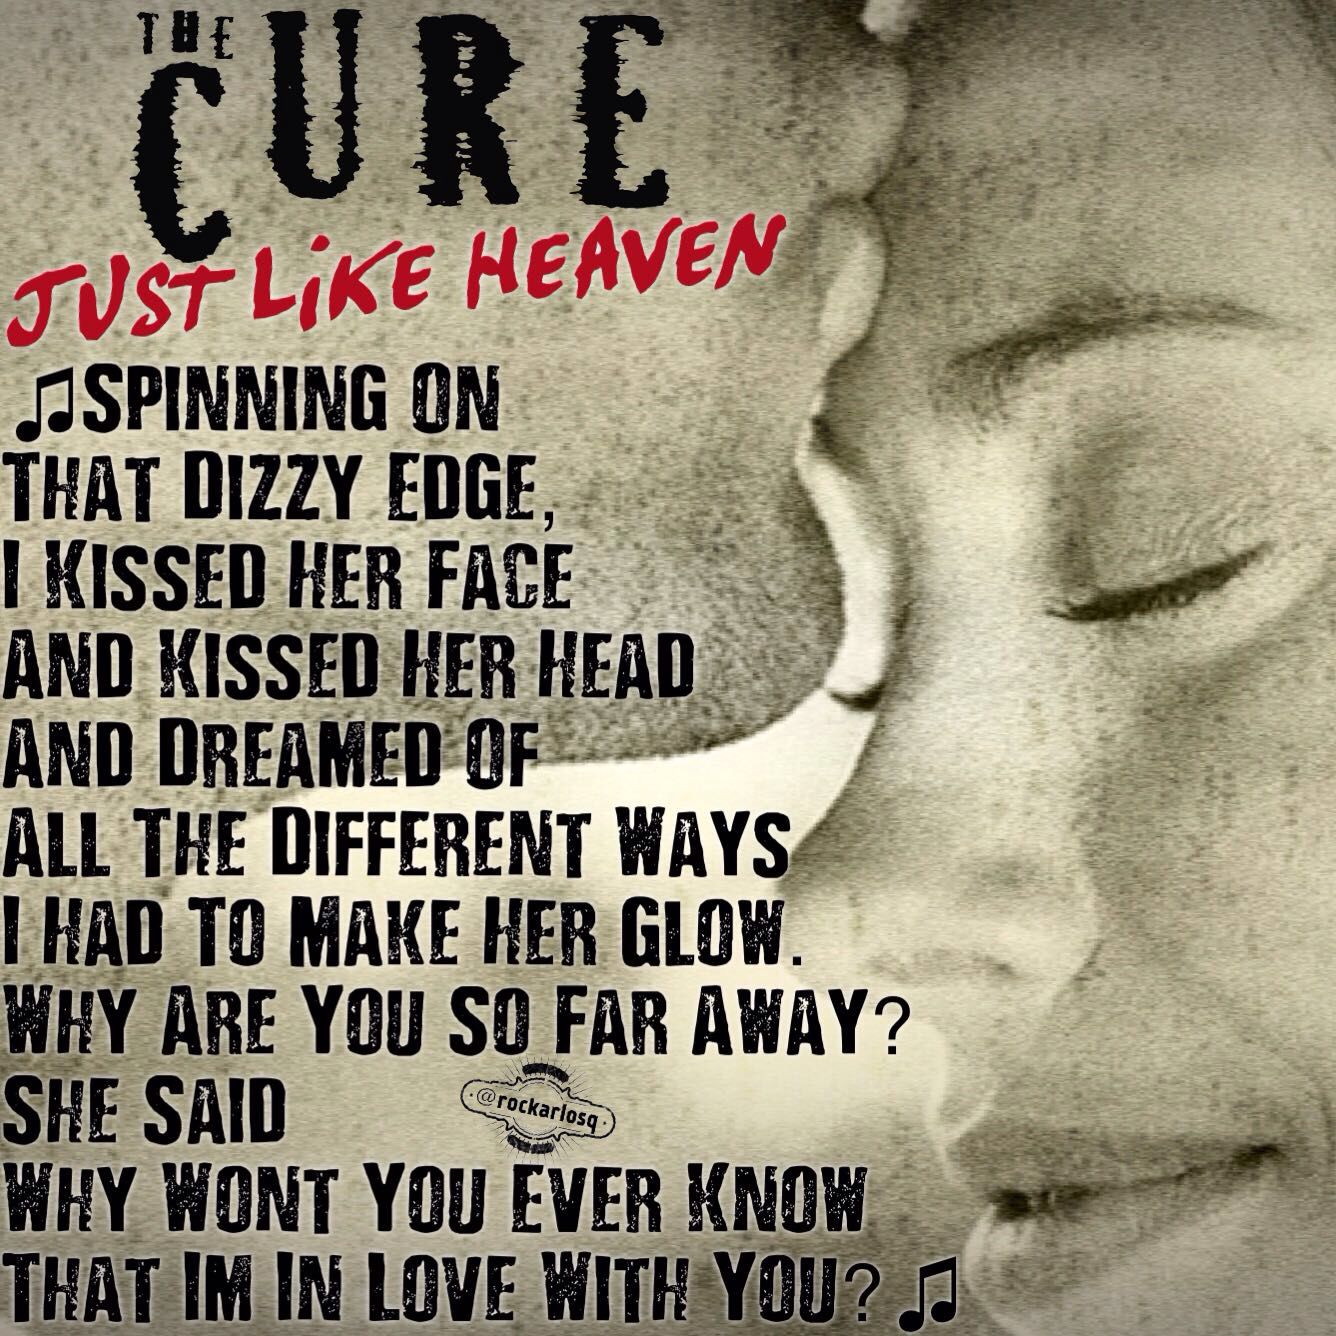 """Spinning on that dizzy edge I kissed her face and kissed her head And dreamed of all the different ways I had To make her glow """"Why are you so far away?"""" she said """"Why won't you ever know that I'm in love with you That I'm in love with you"""" #TheCure #JustLikeHeaven #RobertSmith"""